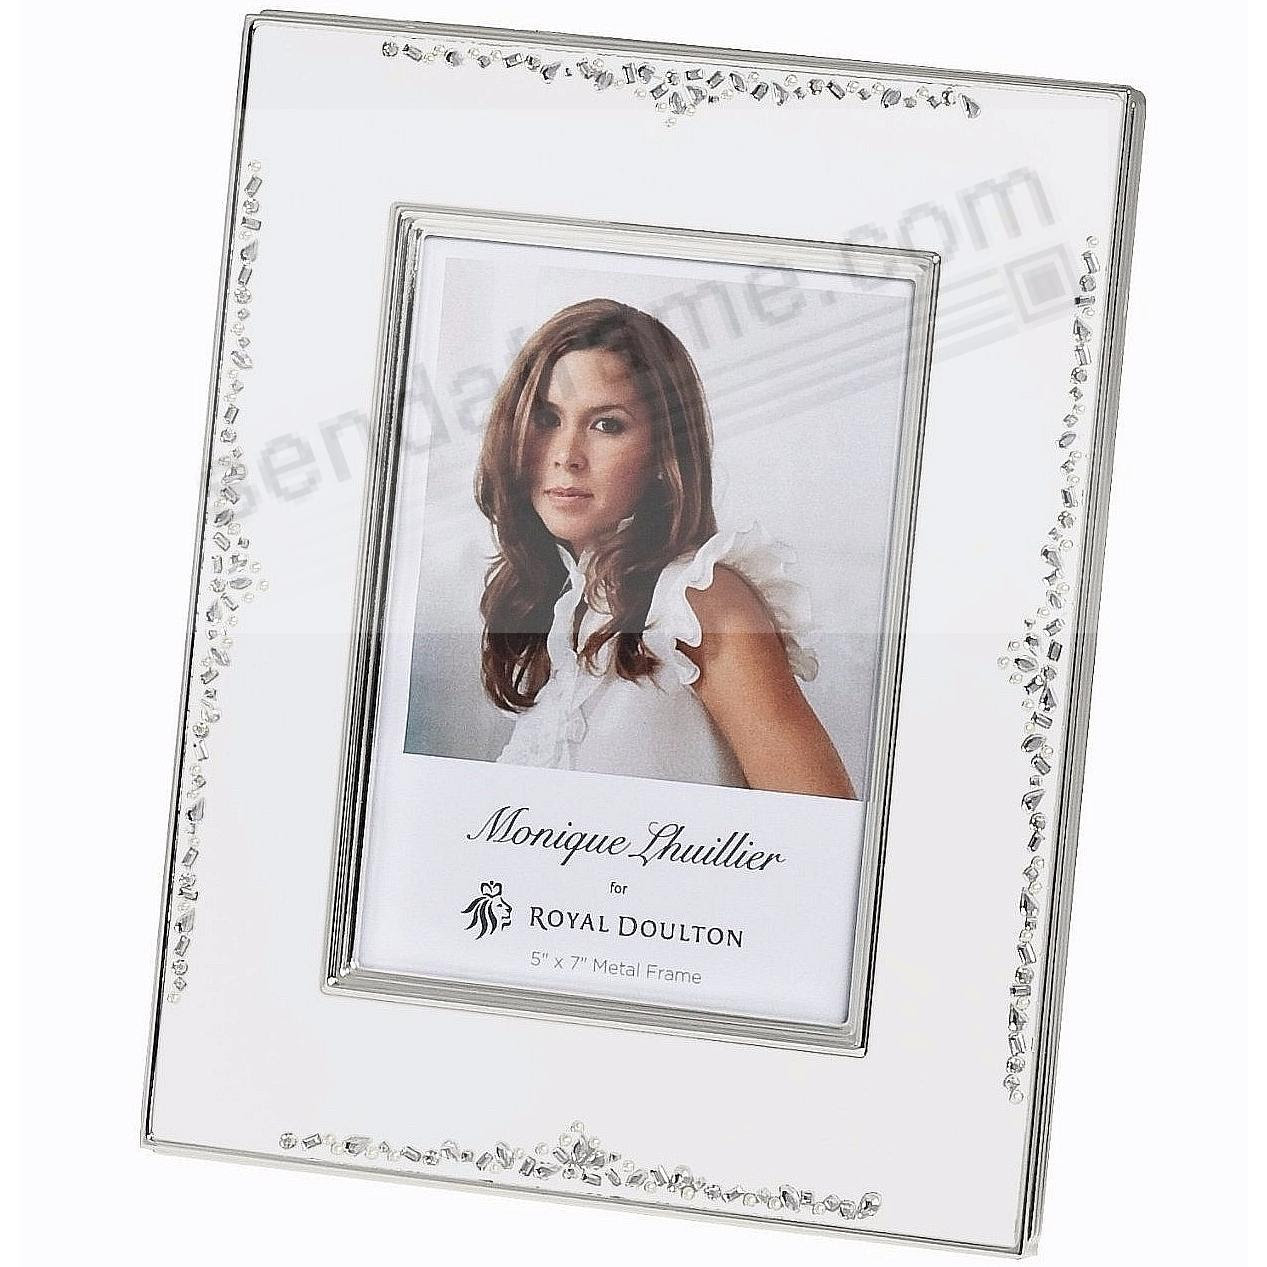 Modern Love By Monique Lhuillier For Royal Doulton Picture Frames